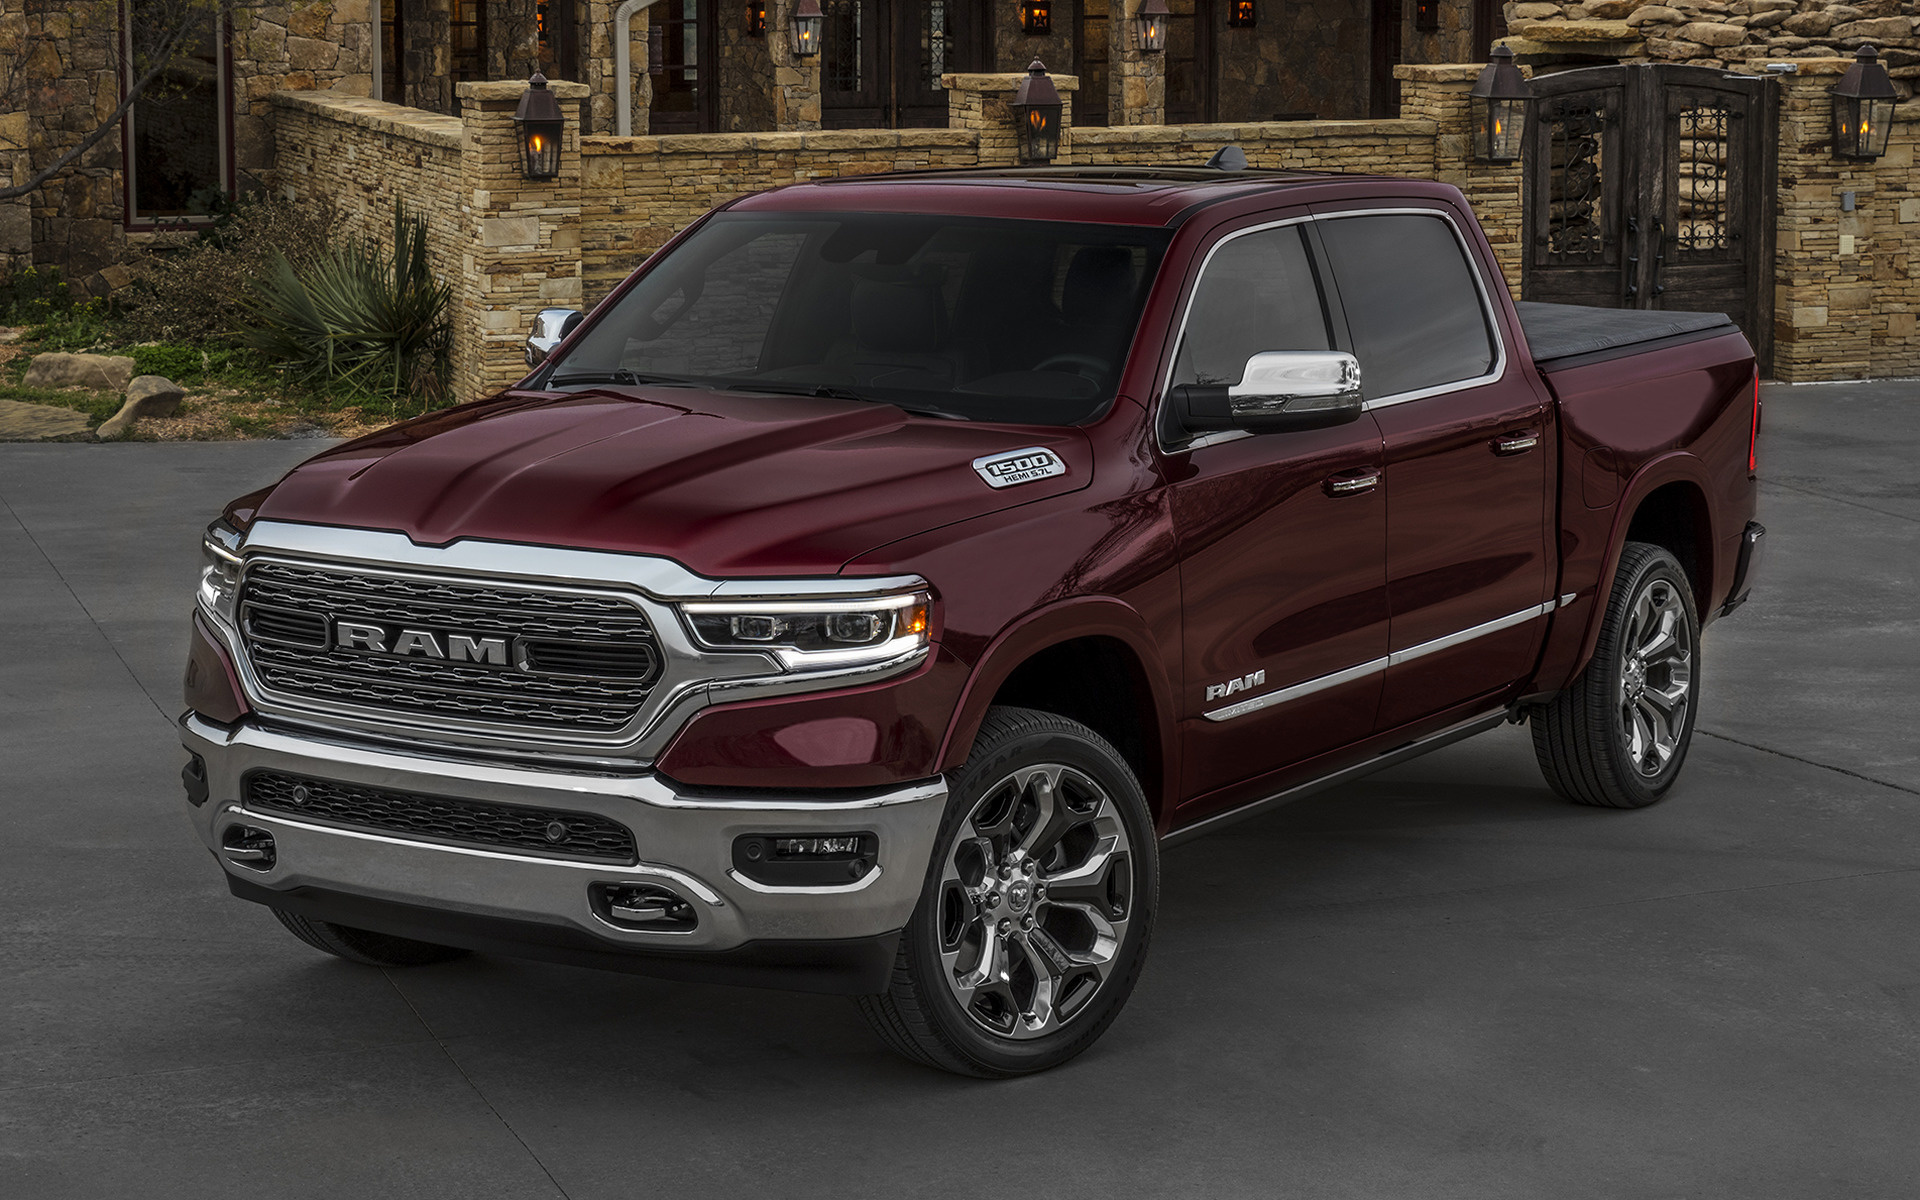 2019 Ram 1500 Limited Crew Cab Short Wallpapers And Hd Images